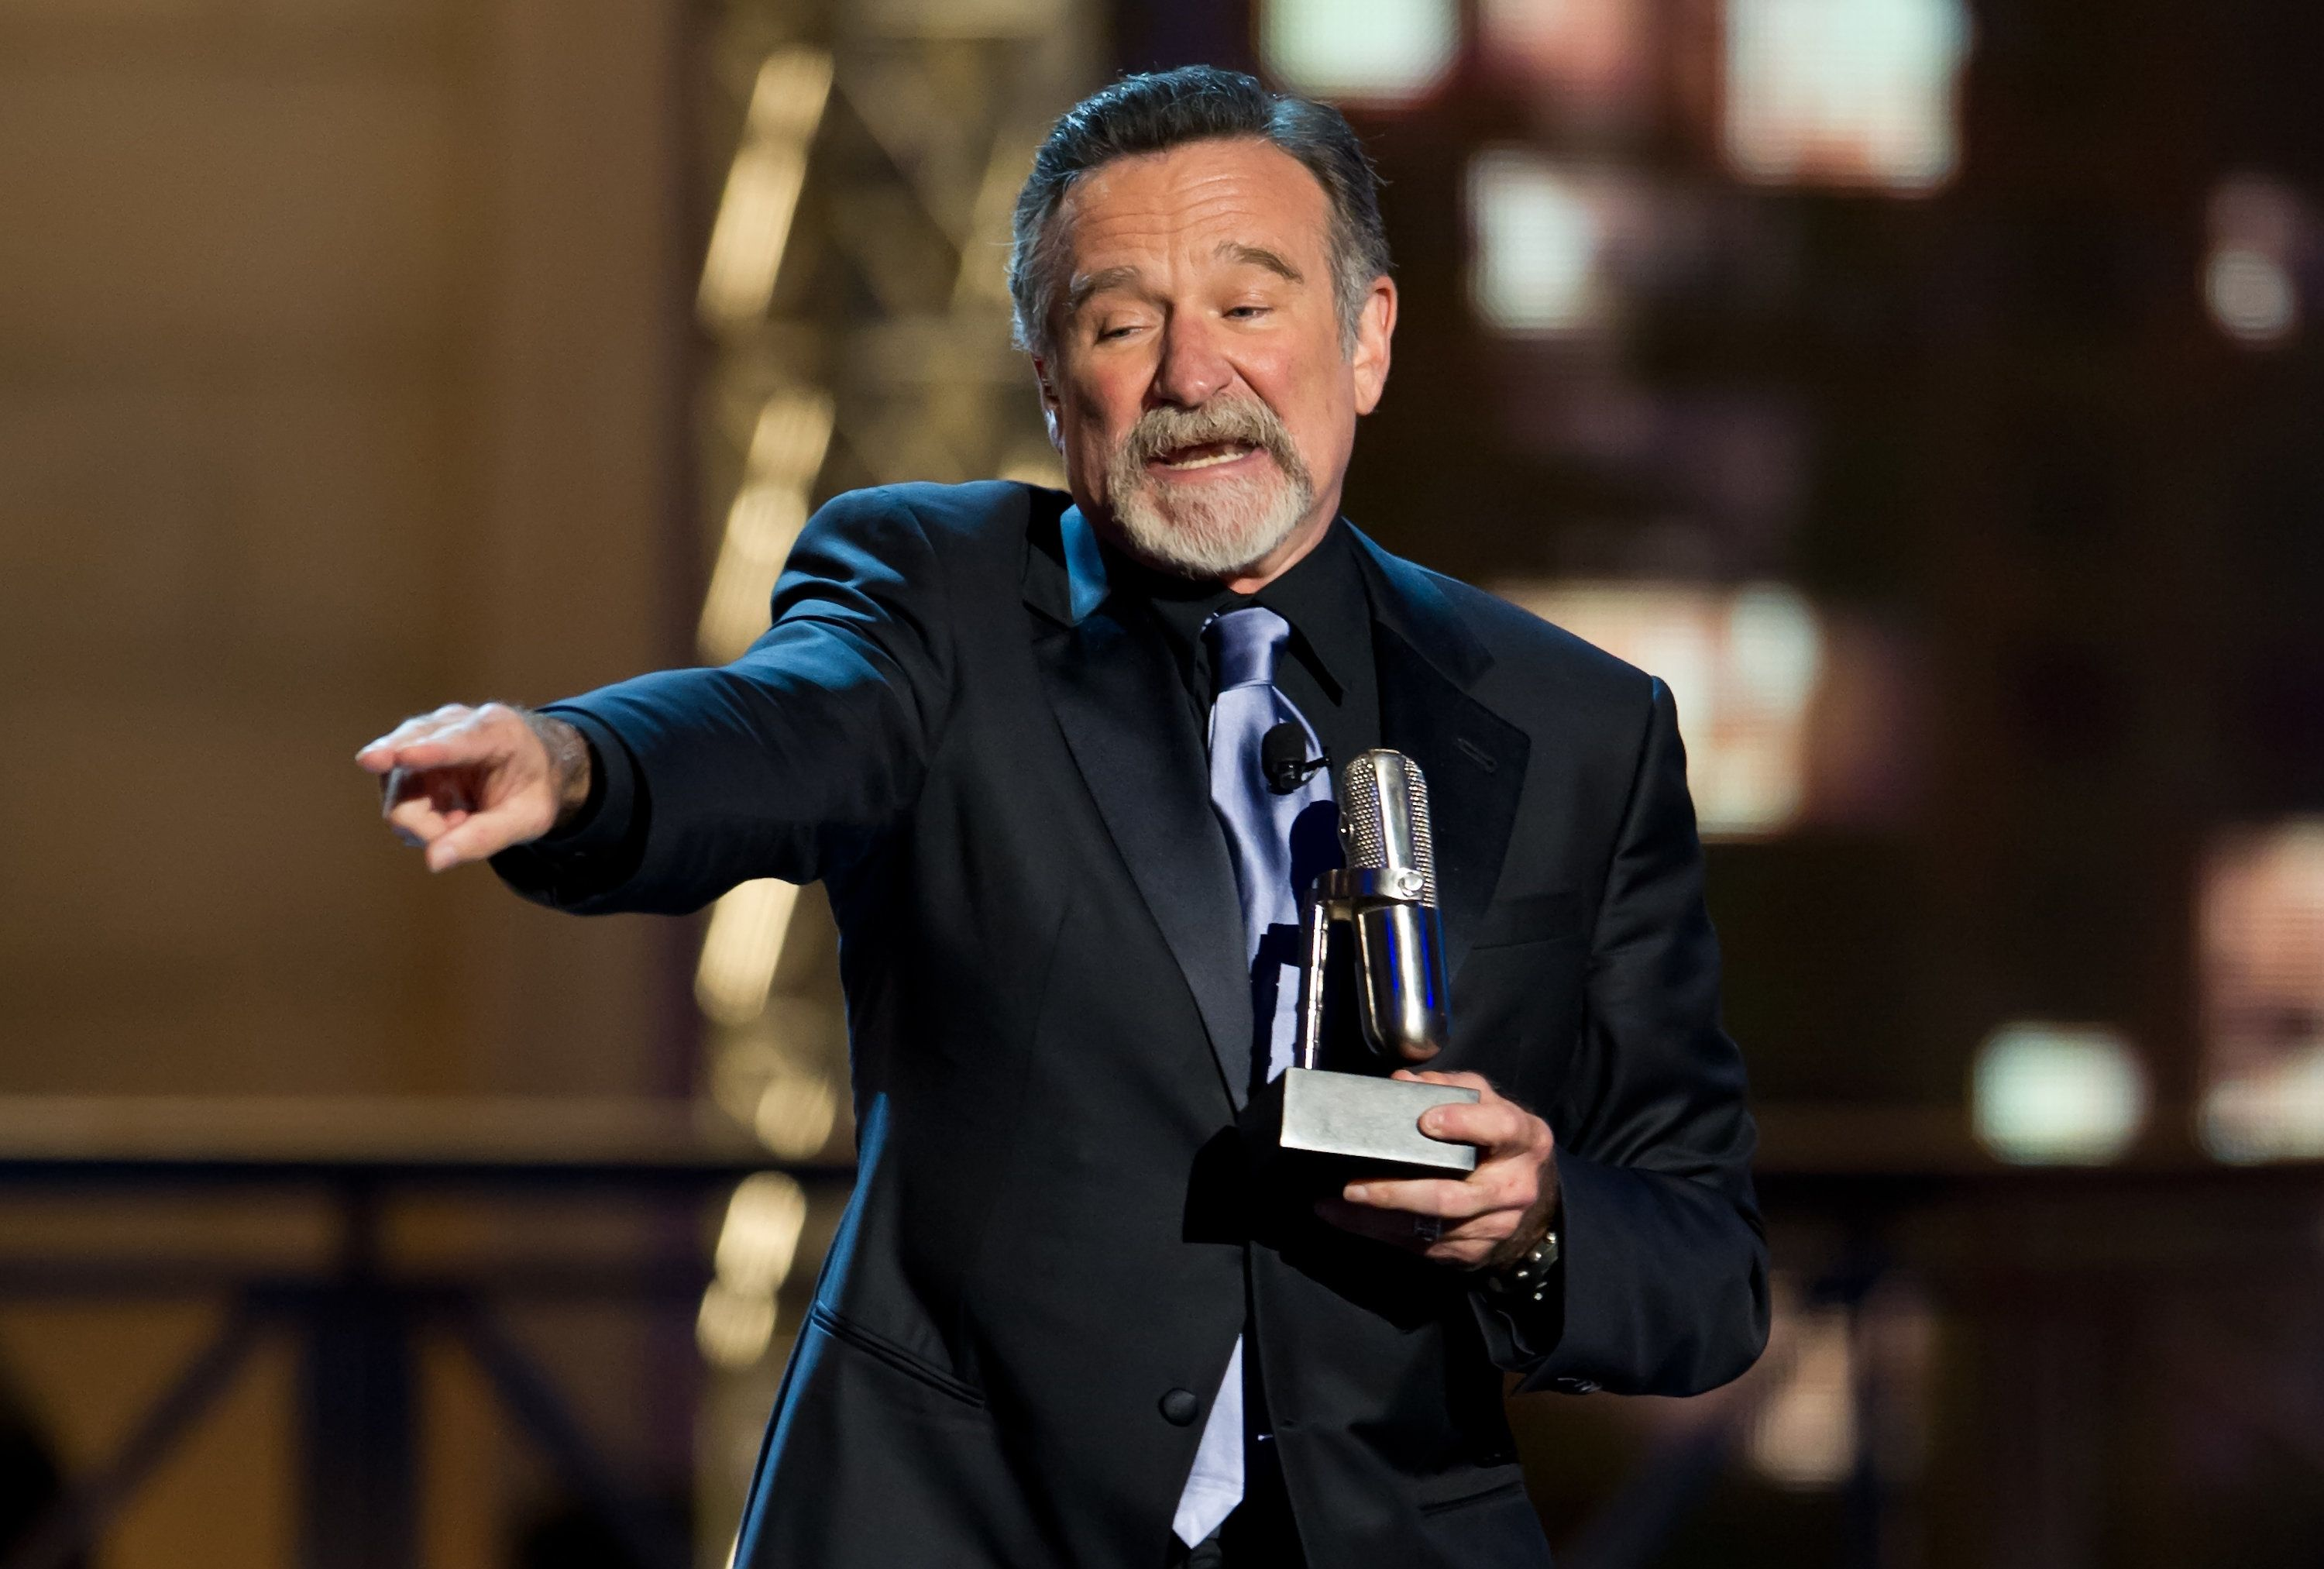 Robin Williams,accepting a comedy award in2012. According to a new biography, he cried uncontrollably during film